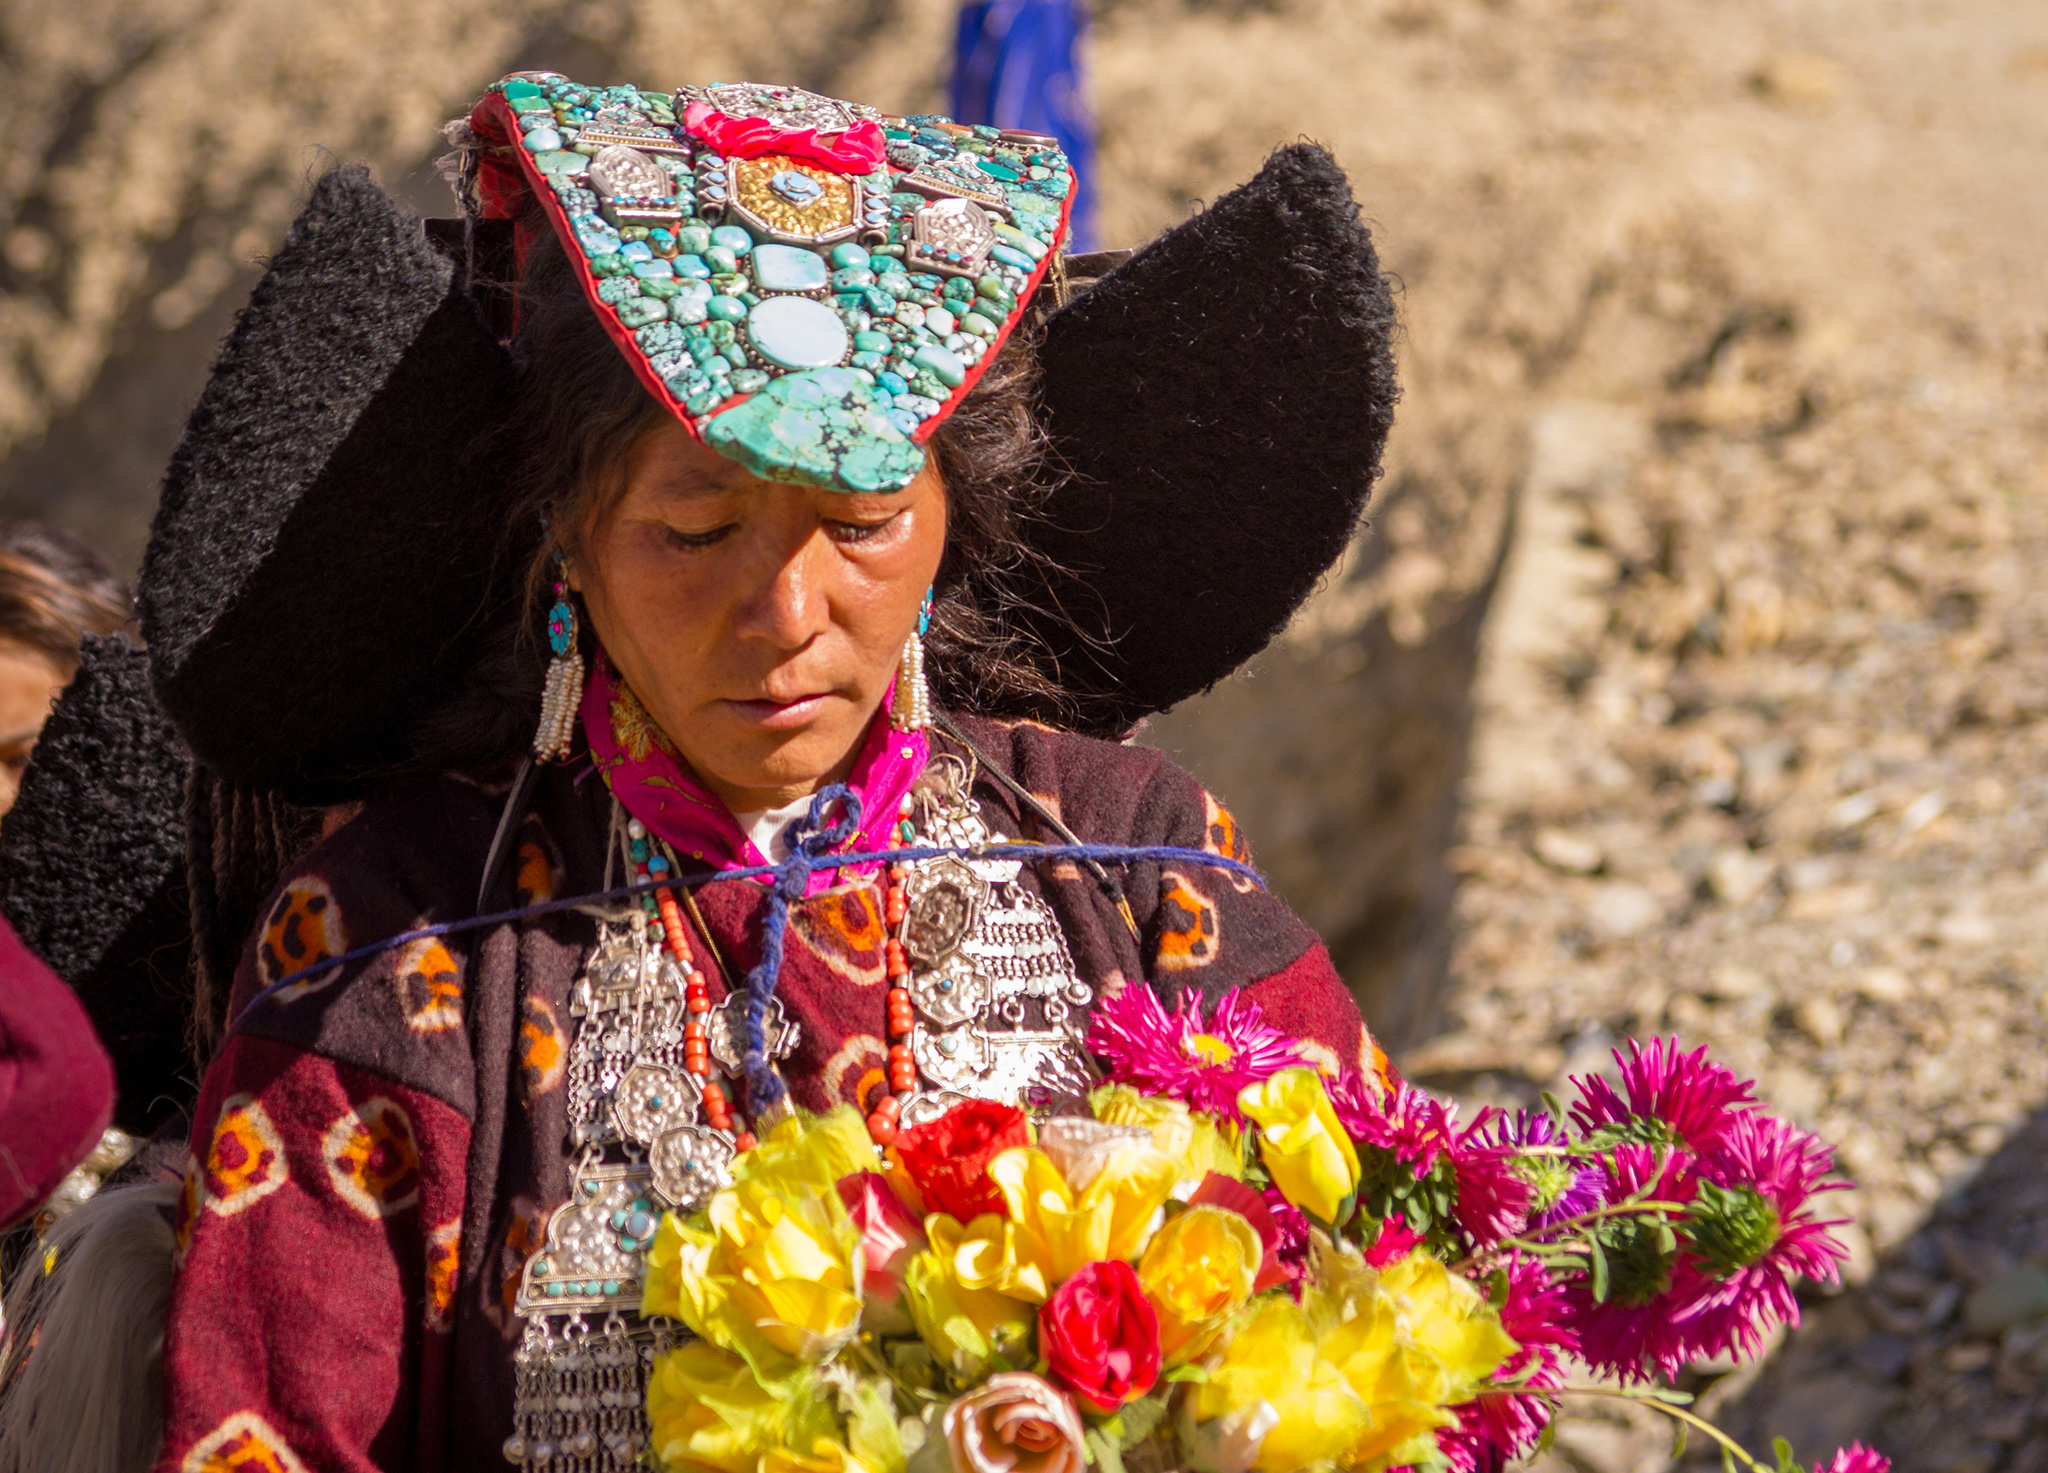 Femmen en costume traditionnel du Ladakh